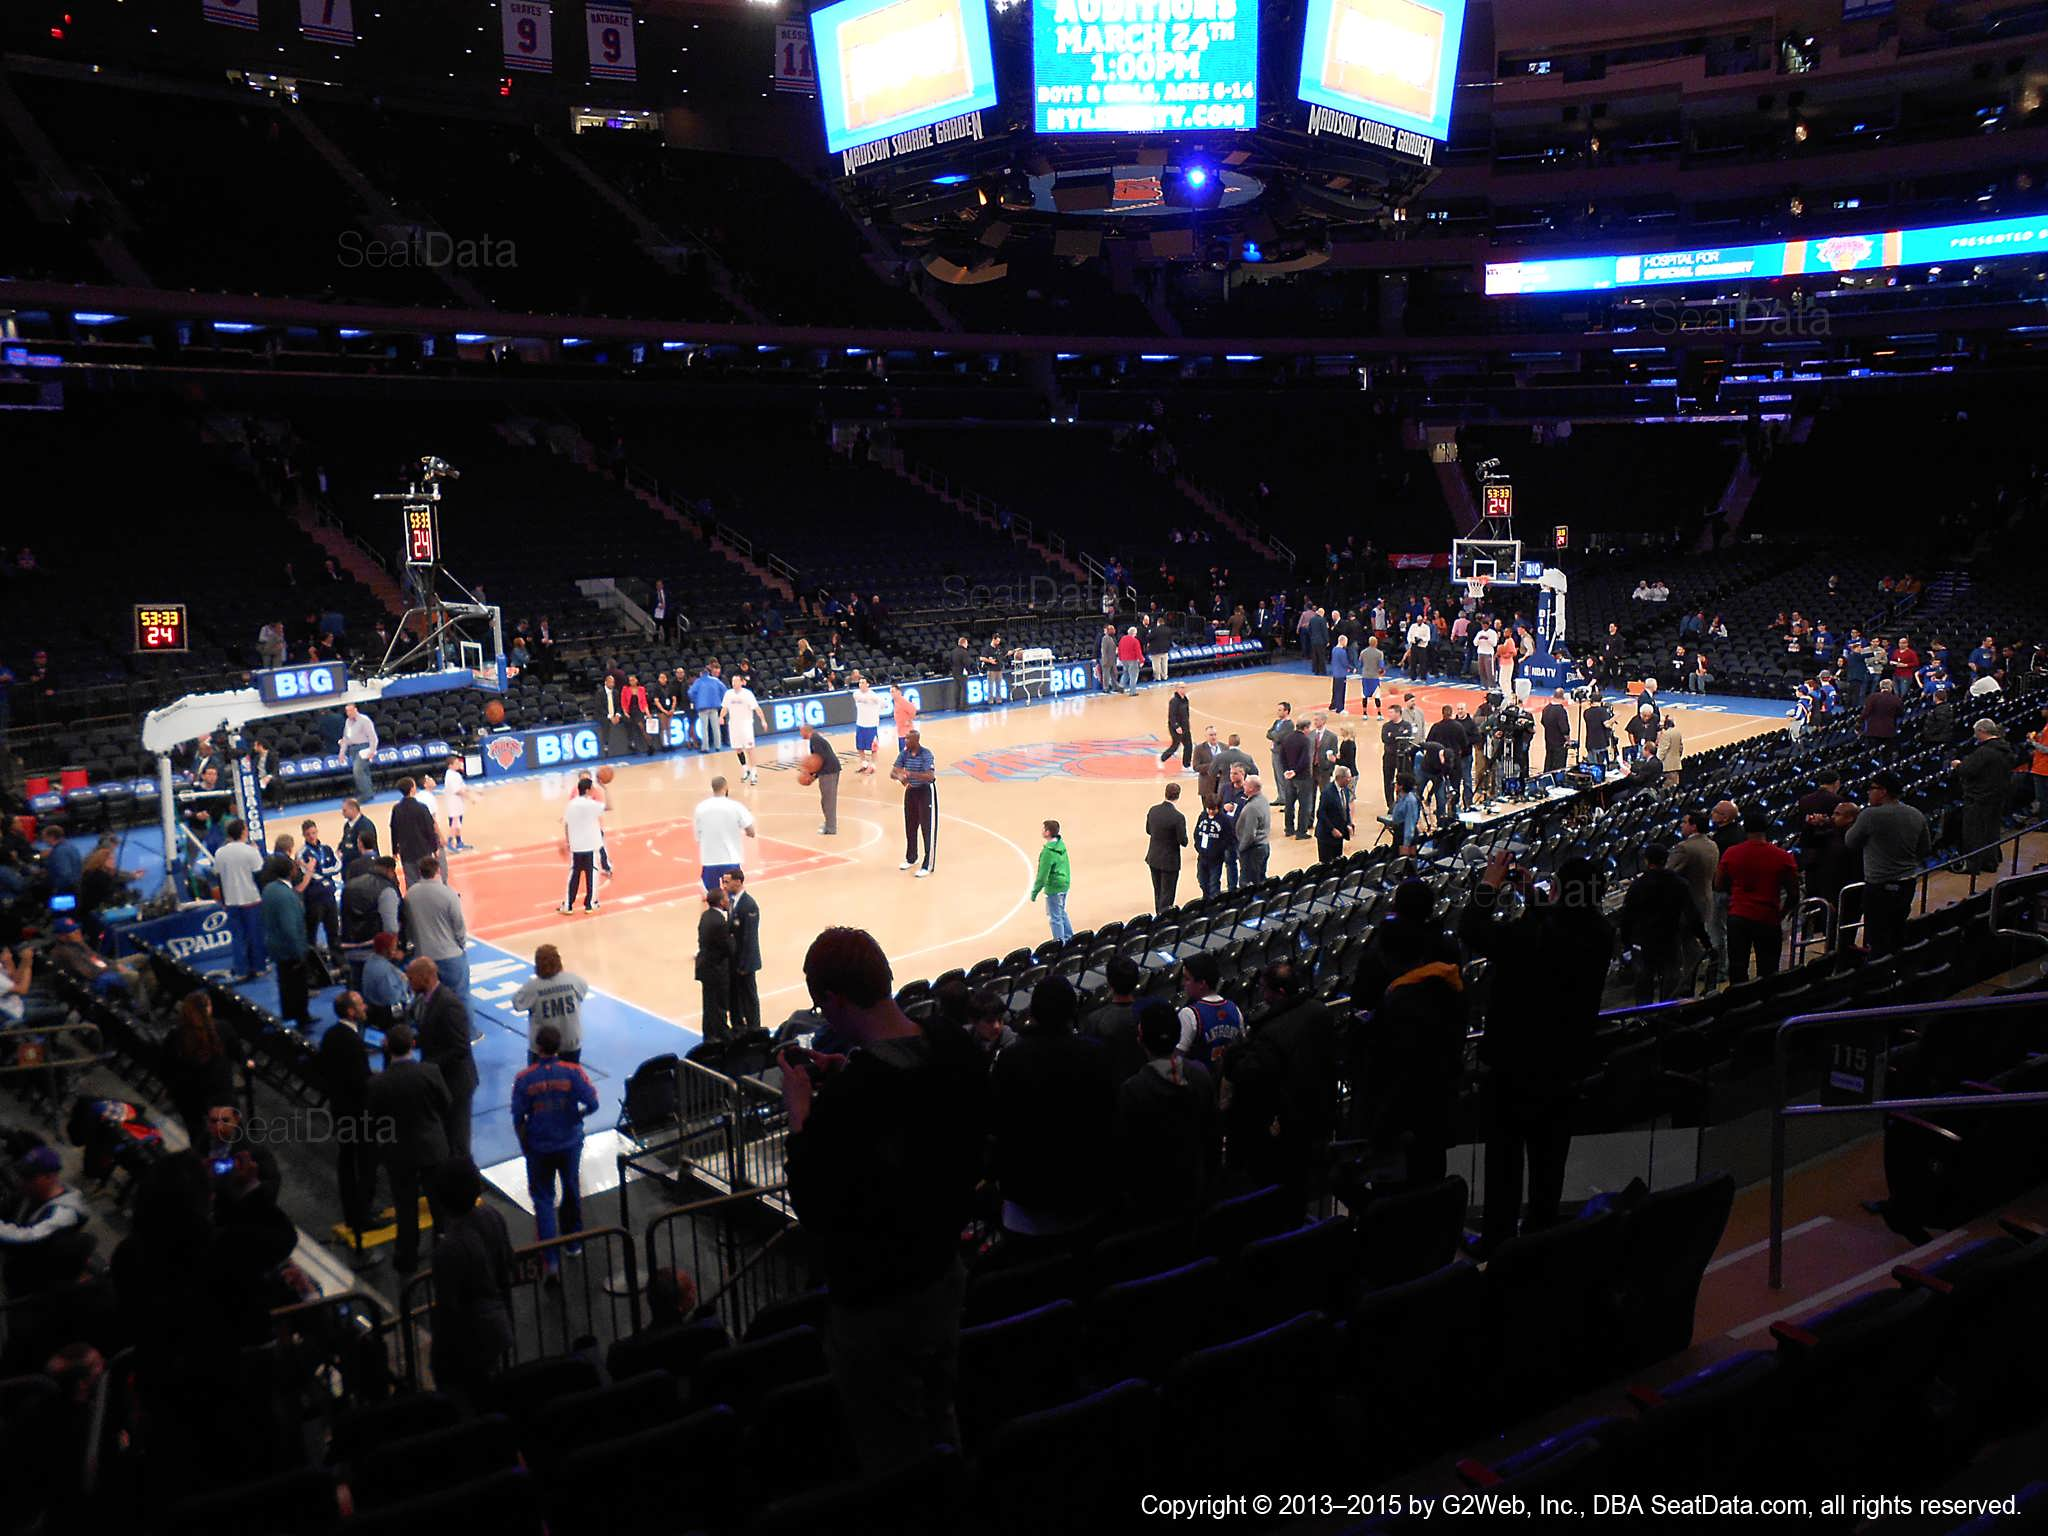 Seat view from section 115 at Madison Square Garden, home of the New York Knicks.